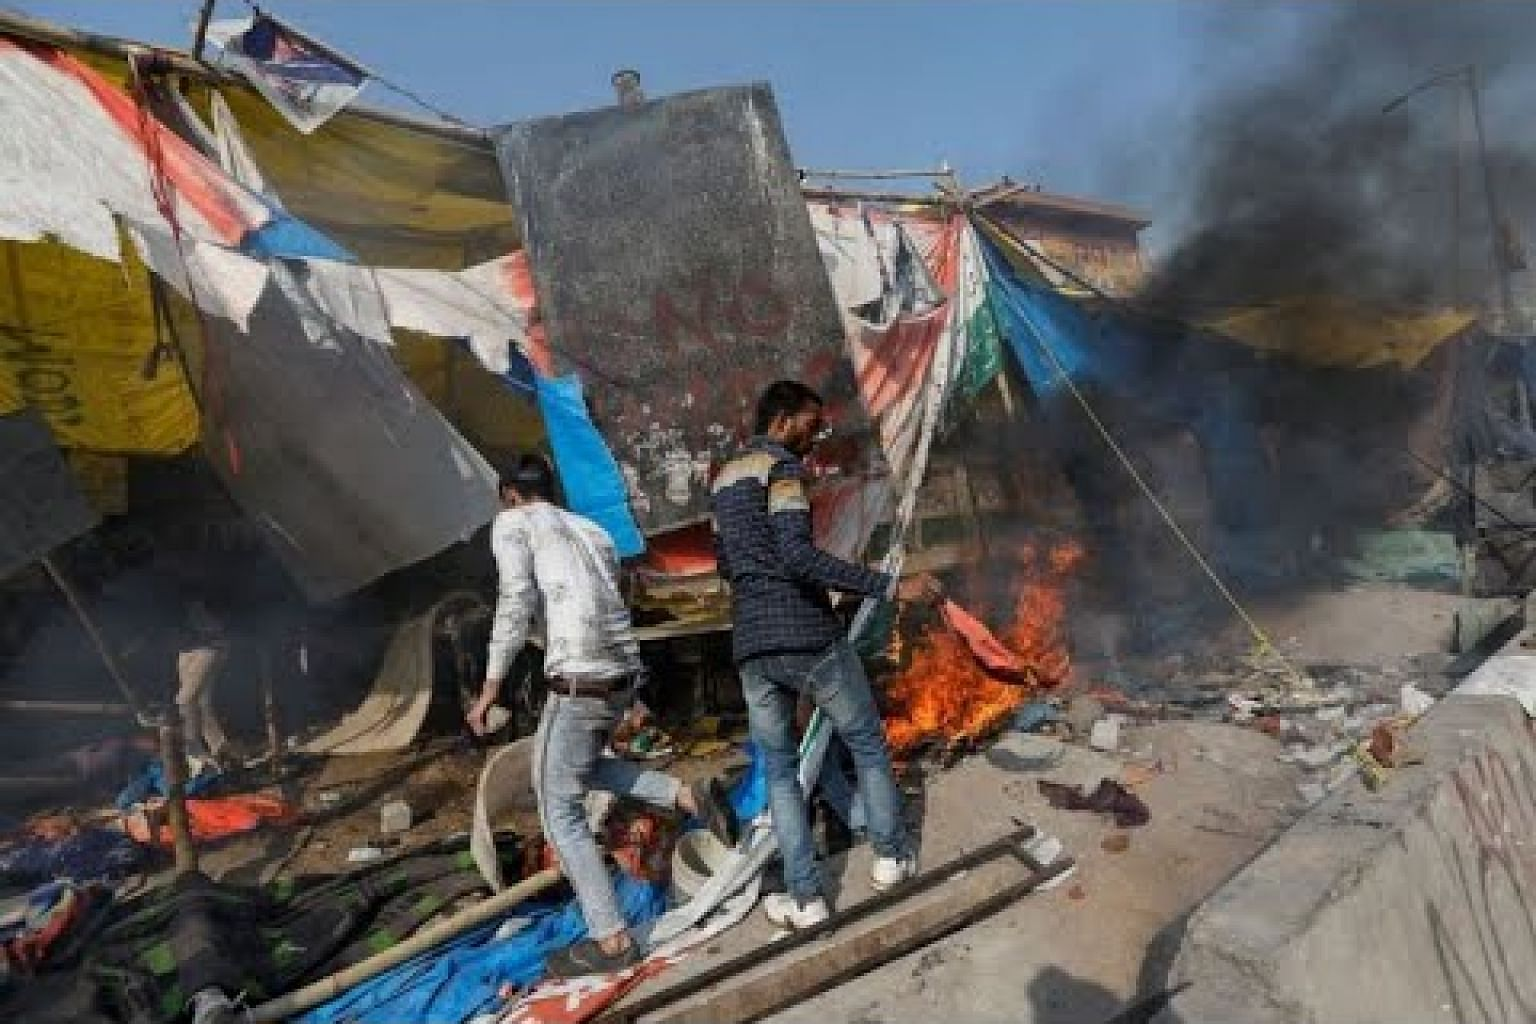 Deadly India riots overshadow Trump's visit